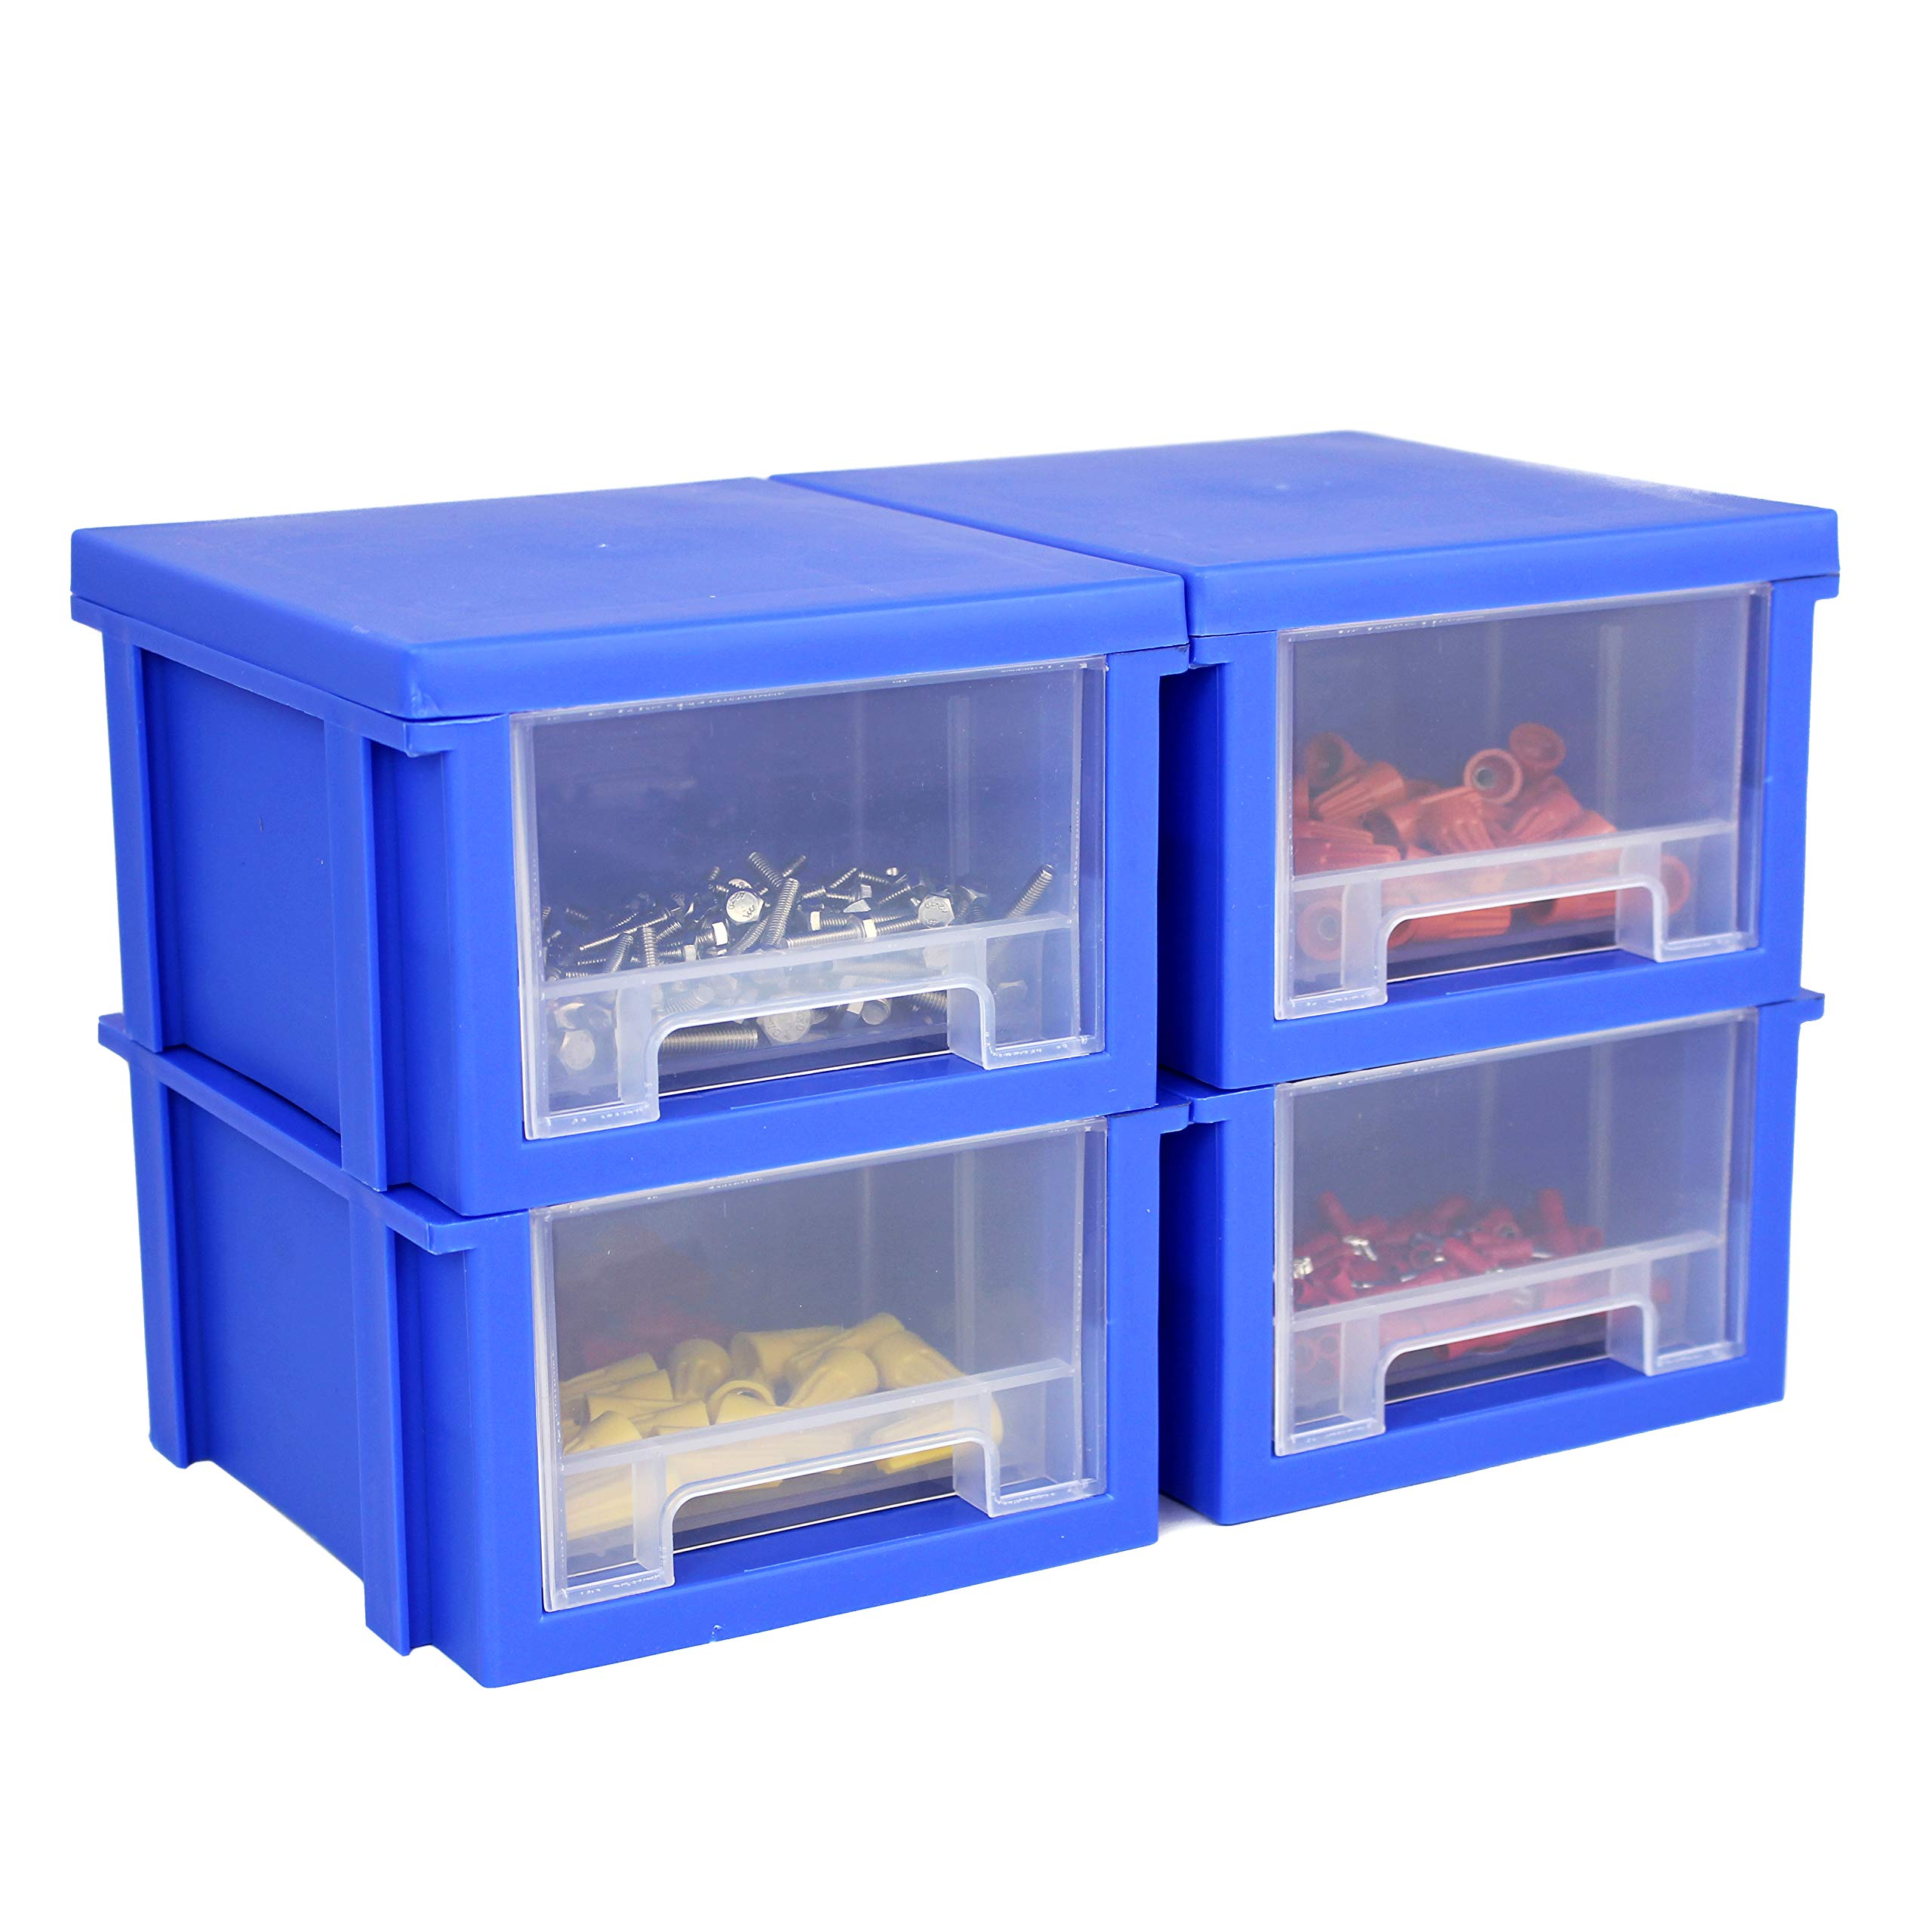 Great stackable storage bins